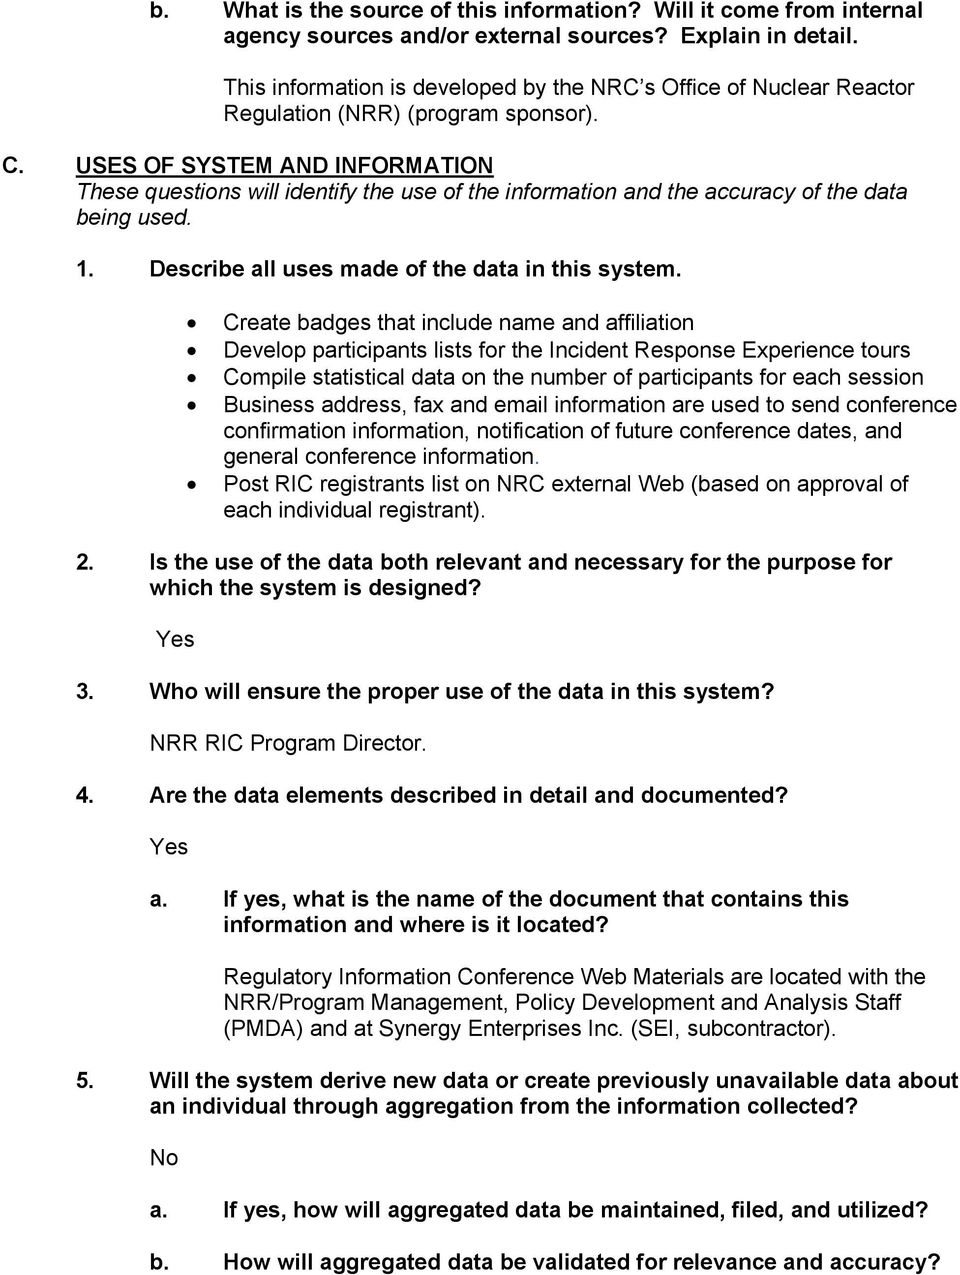 USES OF SYSTEM AND INFORMATION These questions will identify the use of the information and the accuracy of the data being used. 1. Describe all uses made of the data in this system.